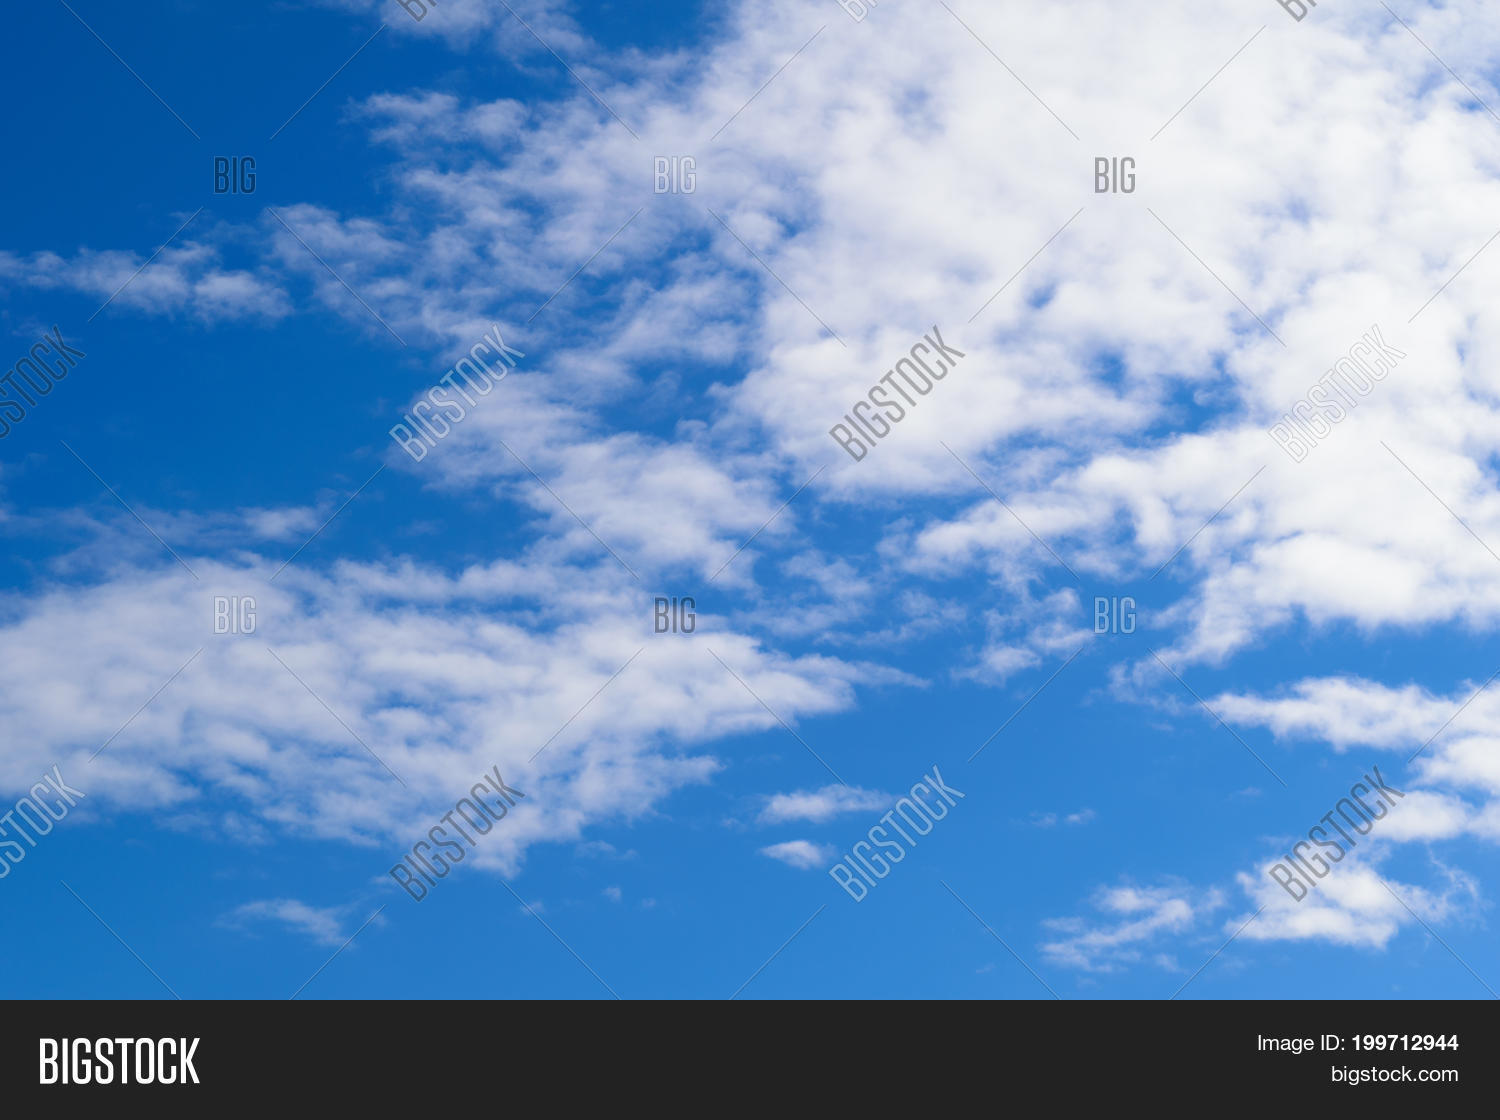 Background Blue Sky Image & Photo (Free Trial) | Bigstock